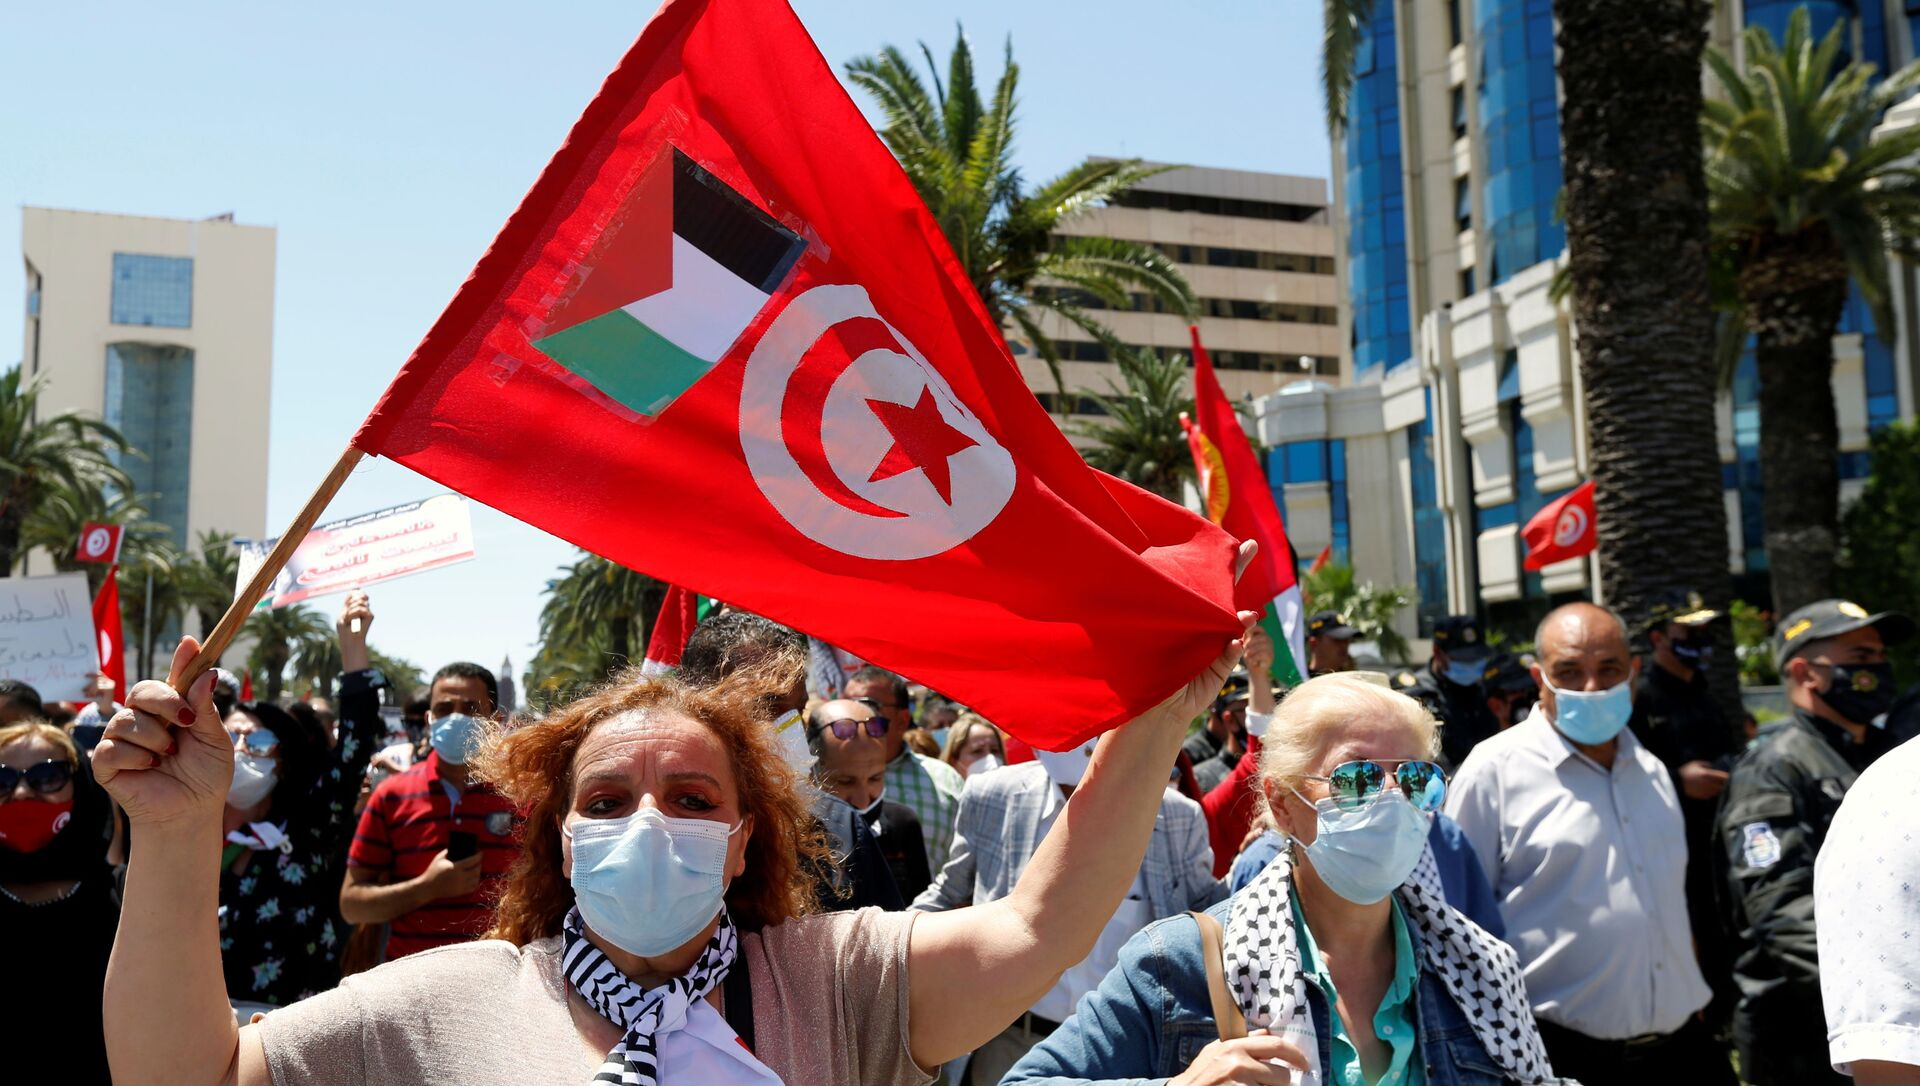 A demonstrator holds a Tunisia flag with a Palestinian flag attached during a protest to express solidarity with the Palestinian people, in Tunis, Tunisia, May 19, 2021. - Sputnik International, 1920, 08.06.2021